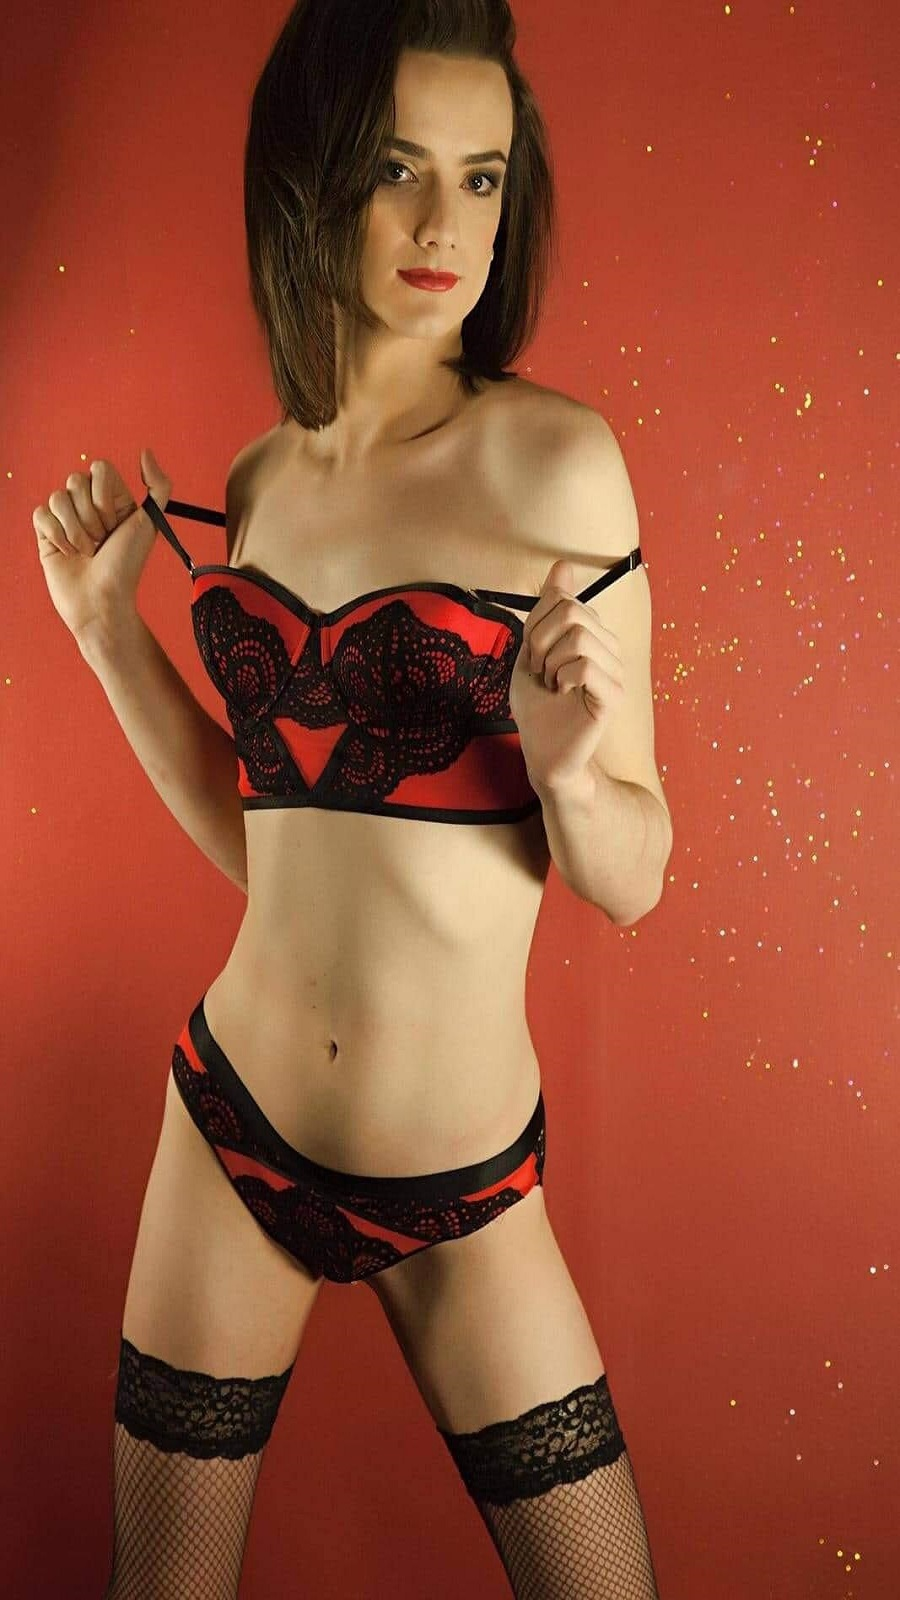 If you are looking for the perfect companion tonight give us a call on 07402724742 to book Lucy for the best night of your life.